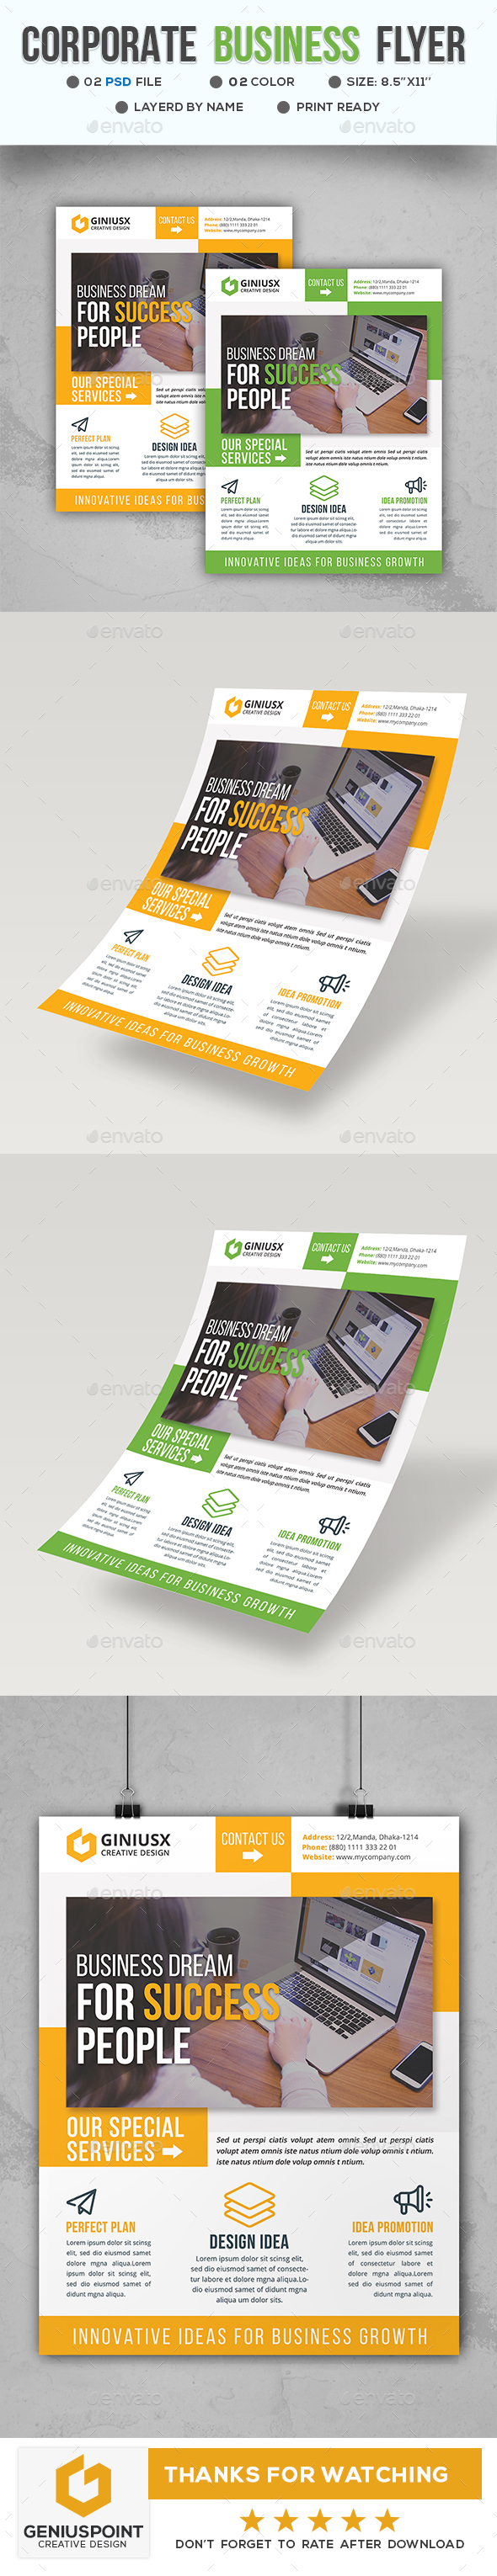 GraphicRiver Corporate Business Flyer 21144820